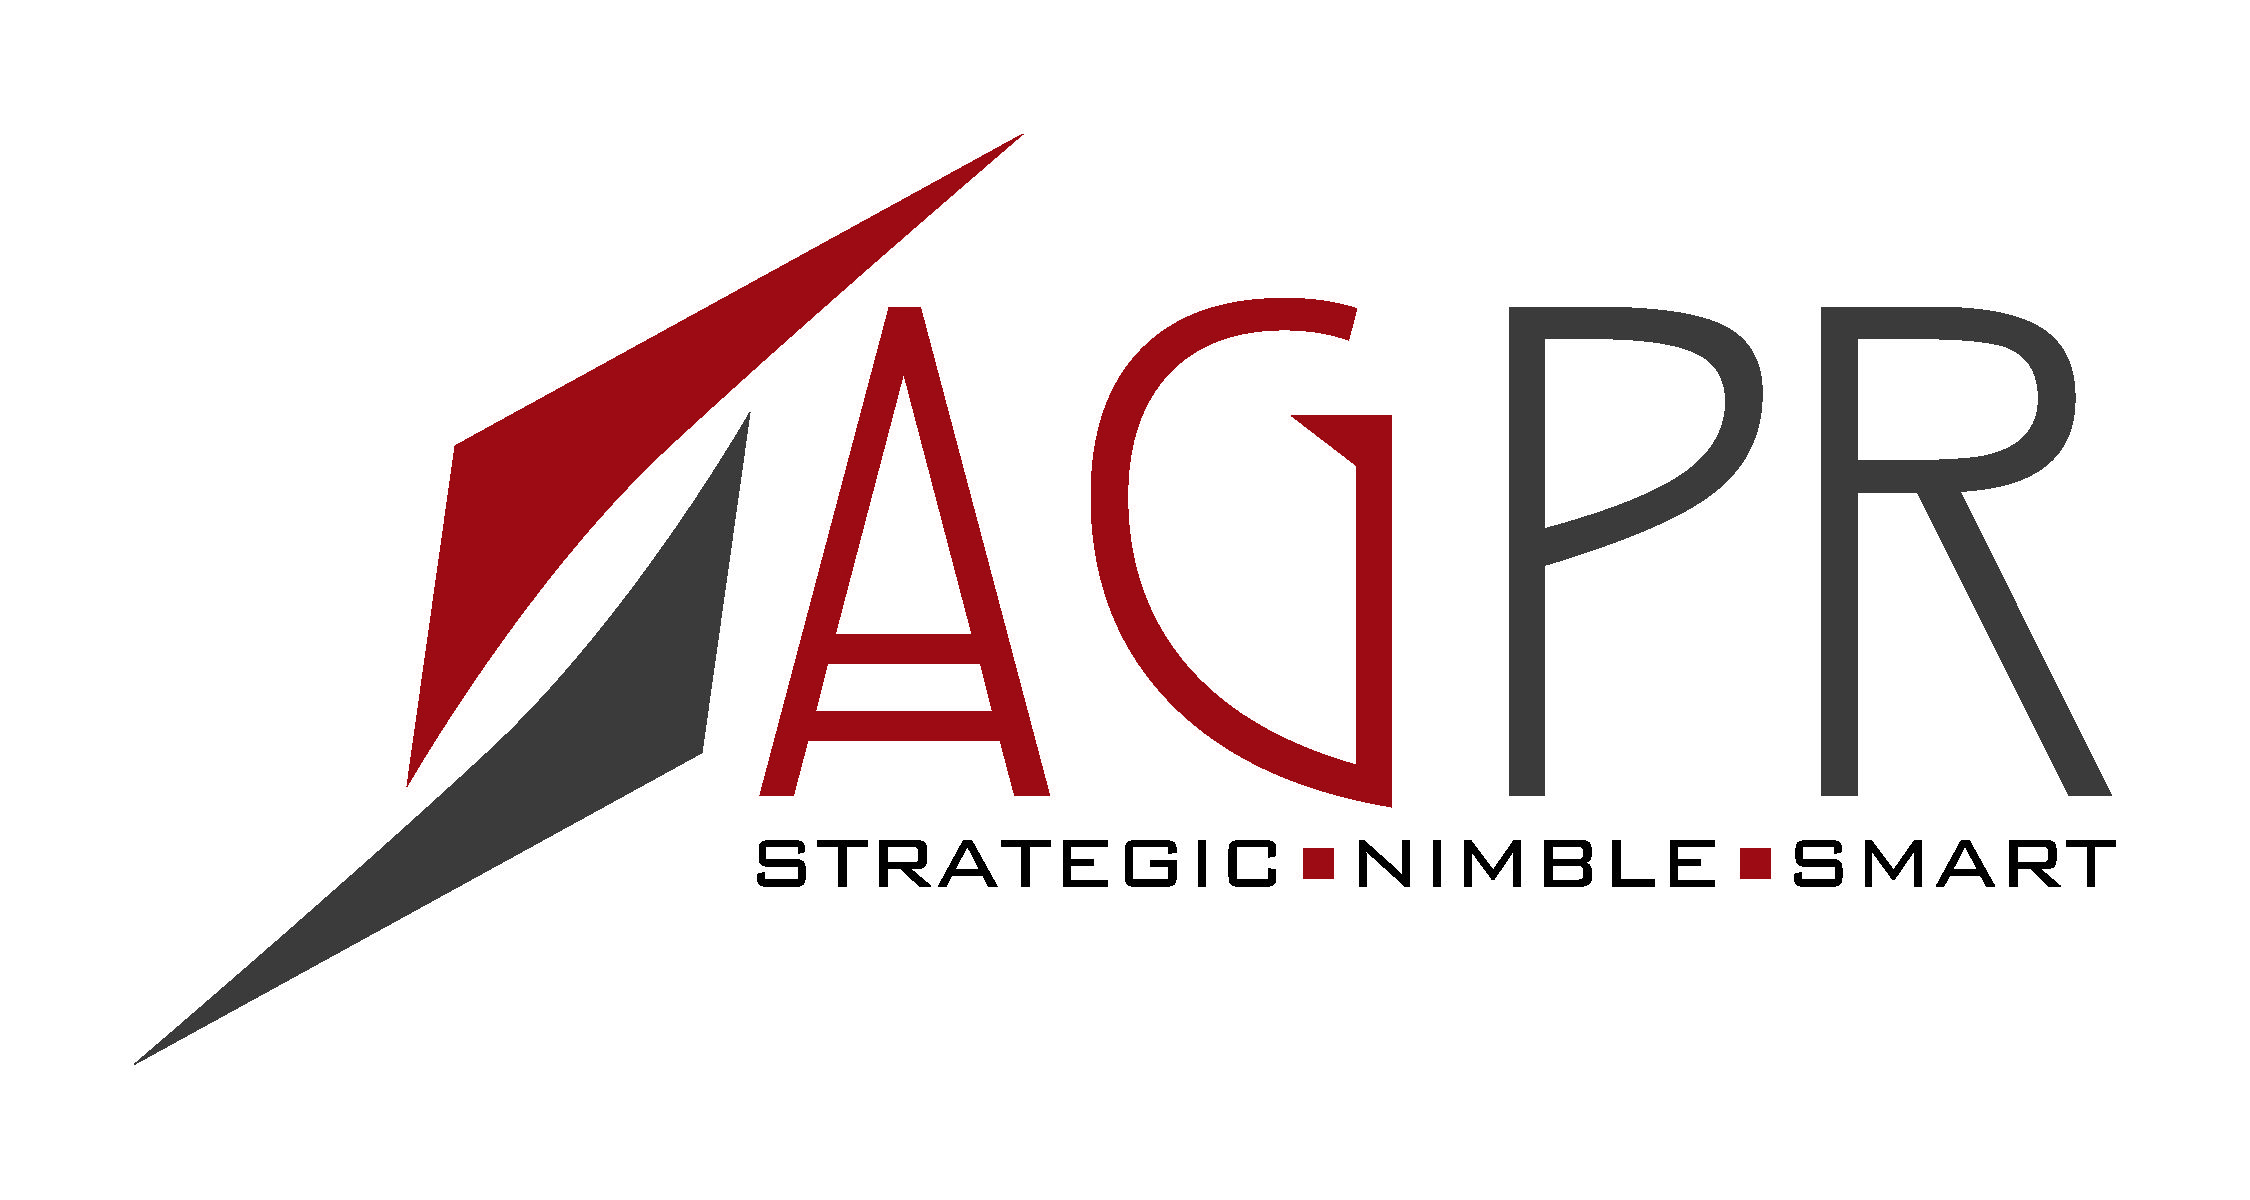 Brand identity remake for agpr a public relations firm in